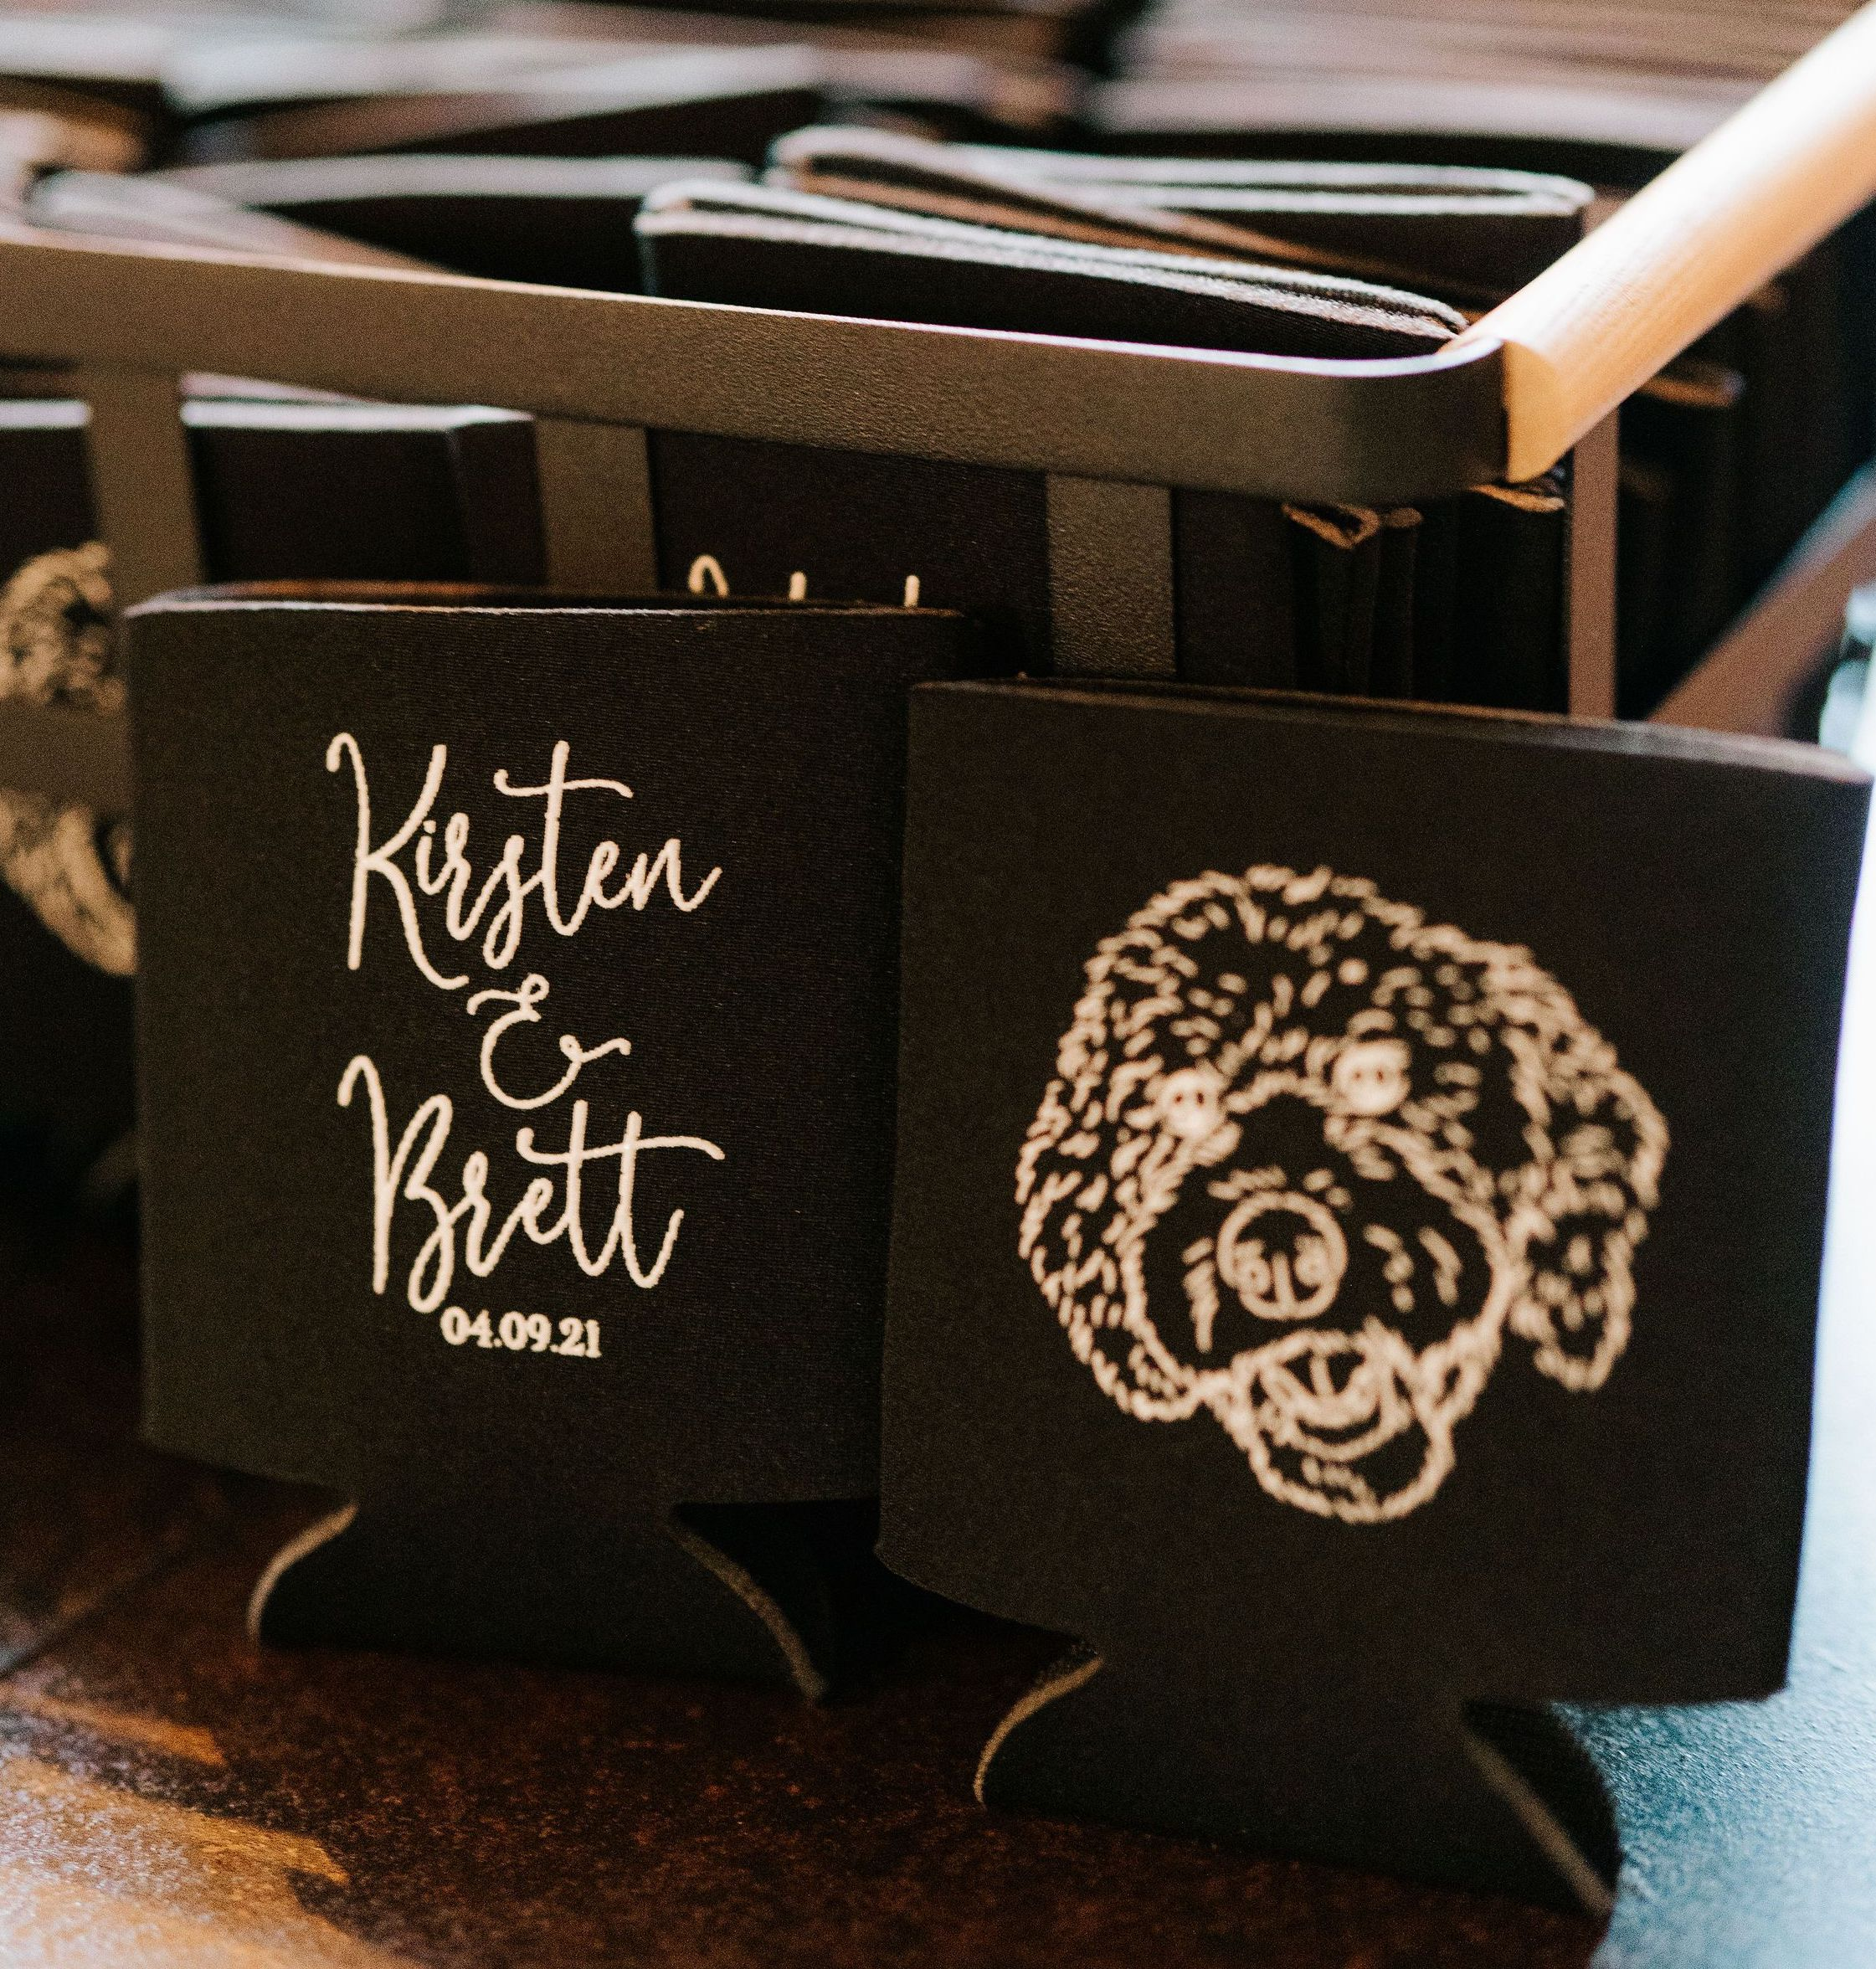 Kirsten and Brett's wedding favors were black can cozies with a cute white cartoon portrait of their dog, Moose.